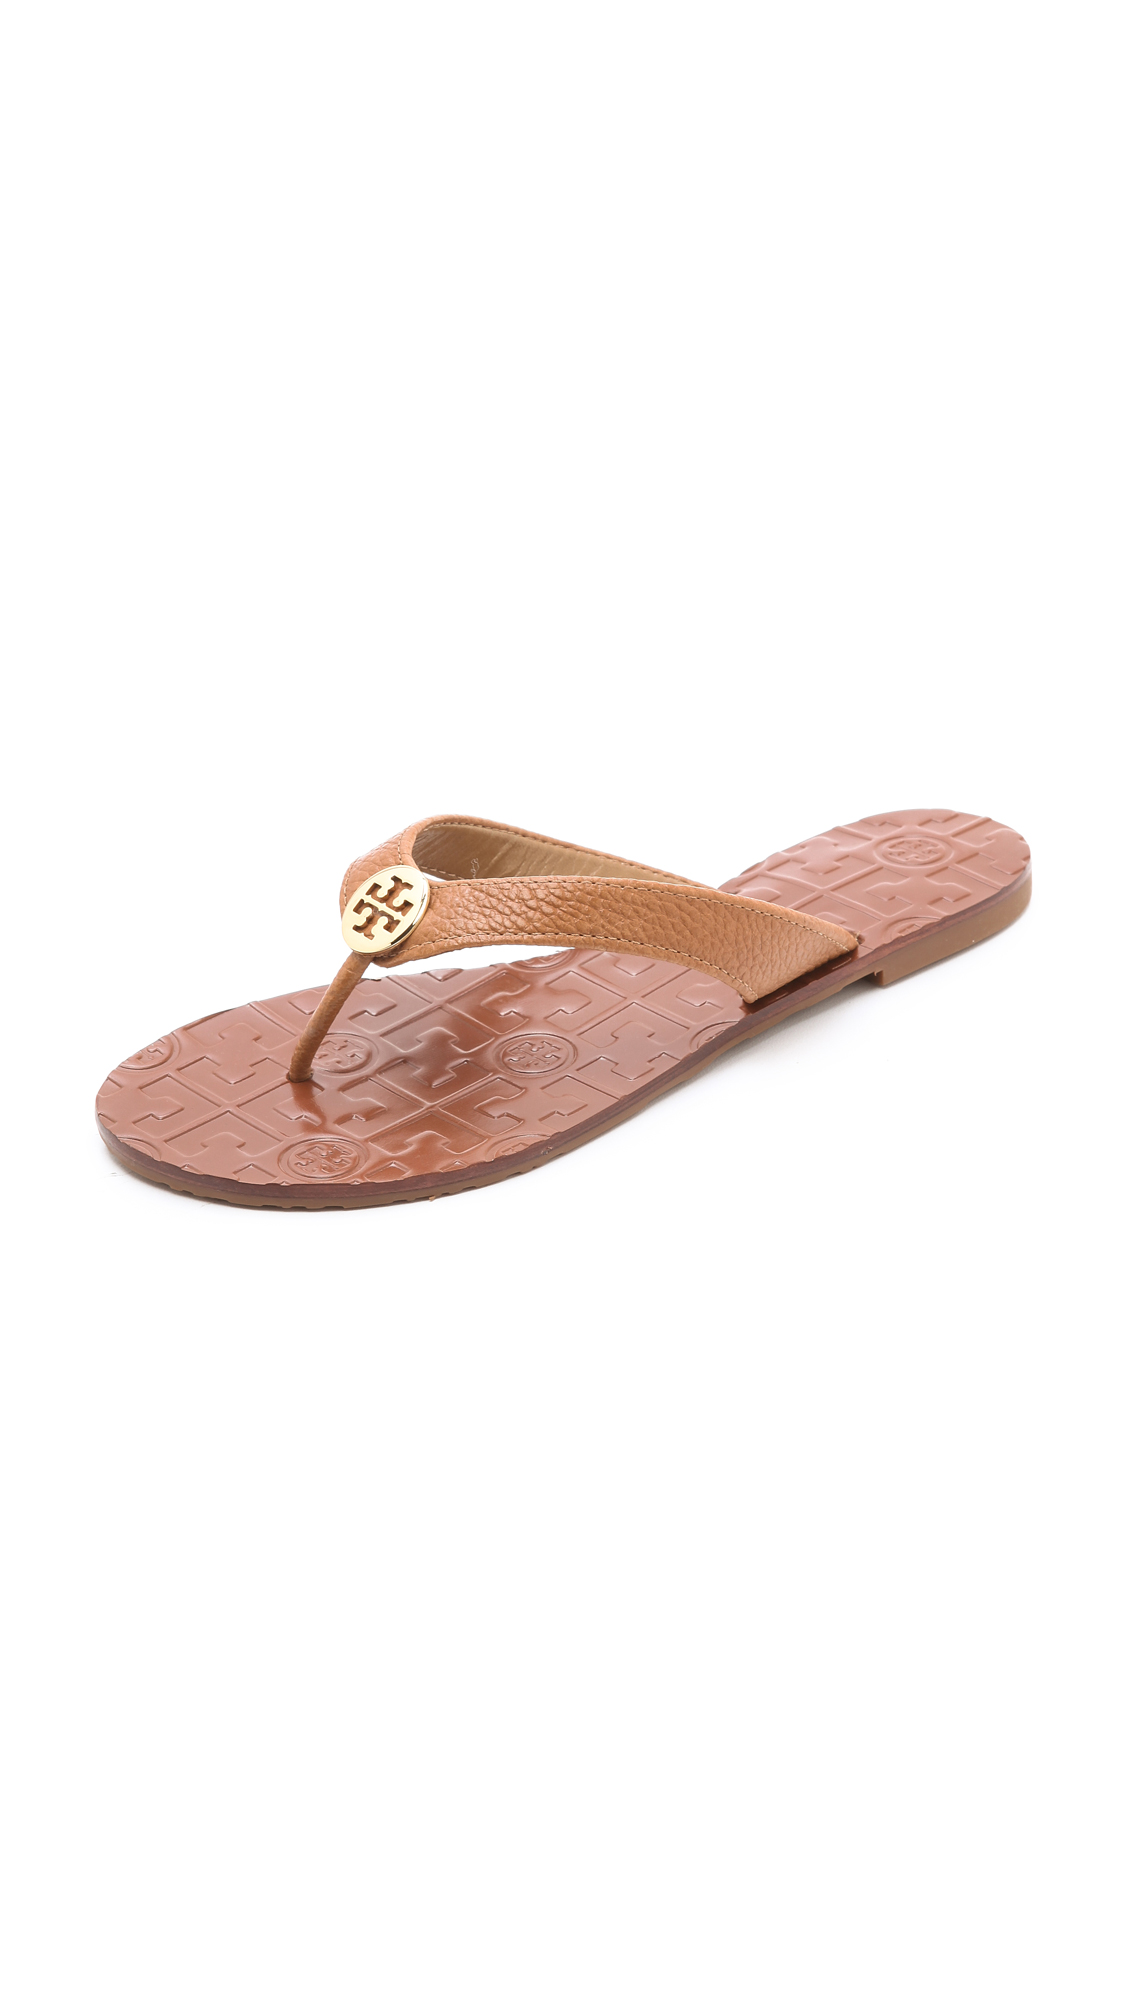 7587e37941948d Tory Burch Thora Flat Thong Sandals on PopScreen